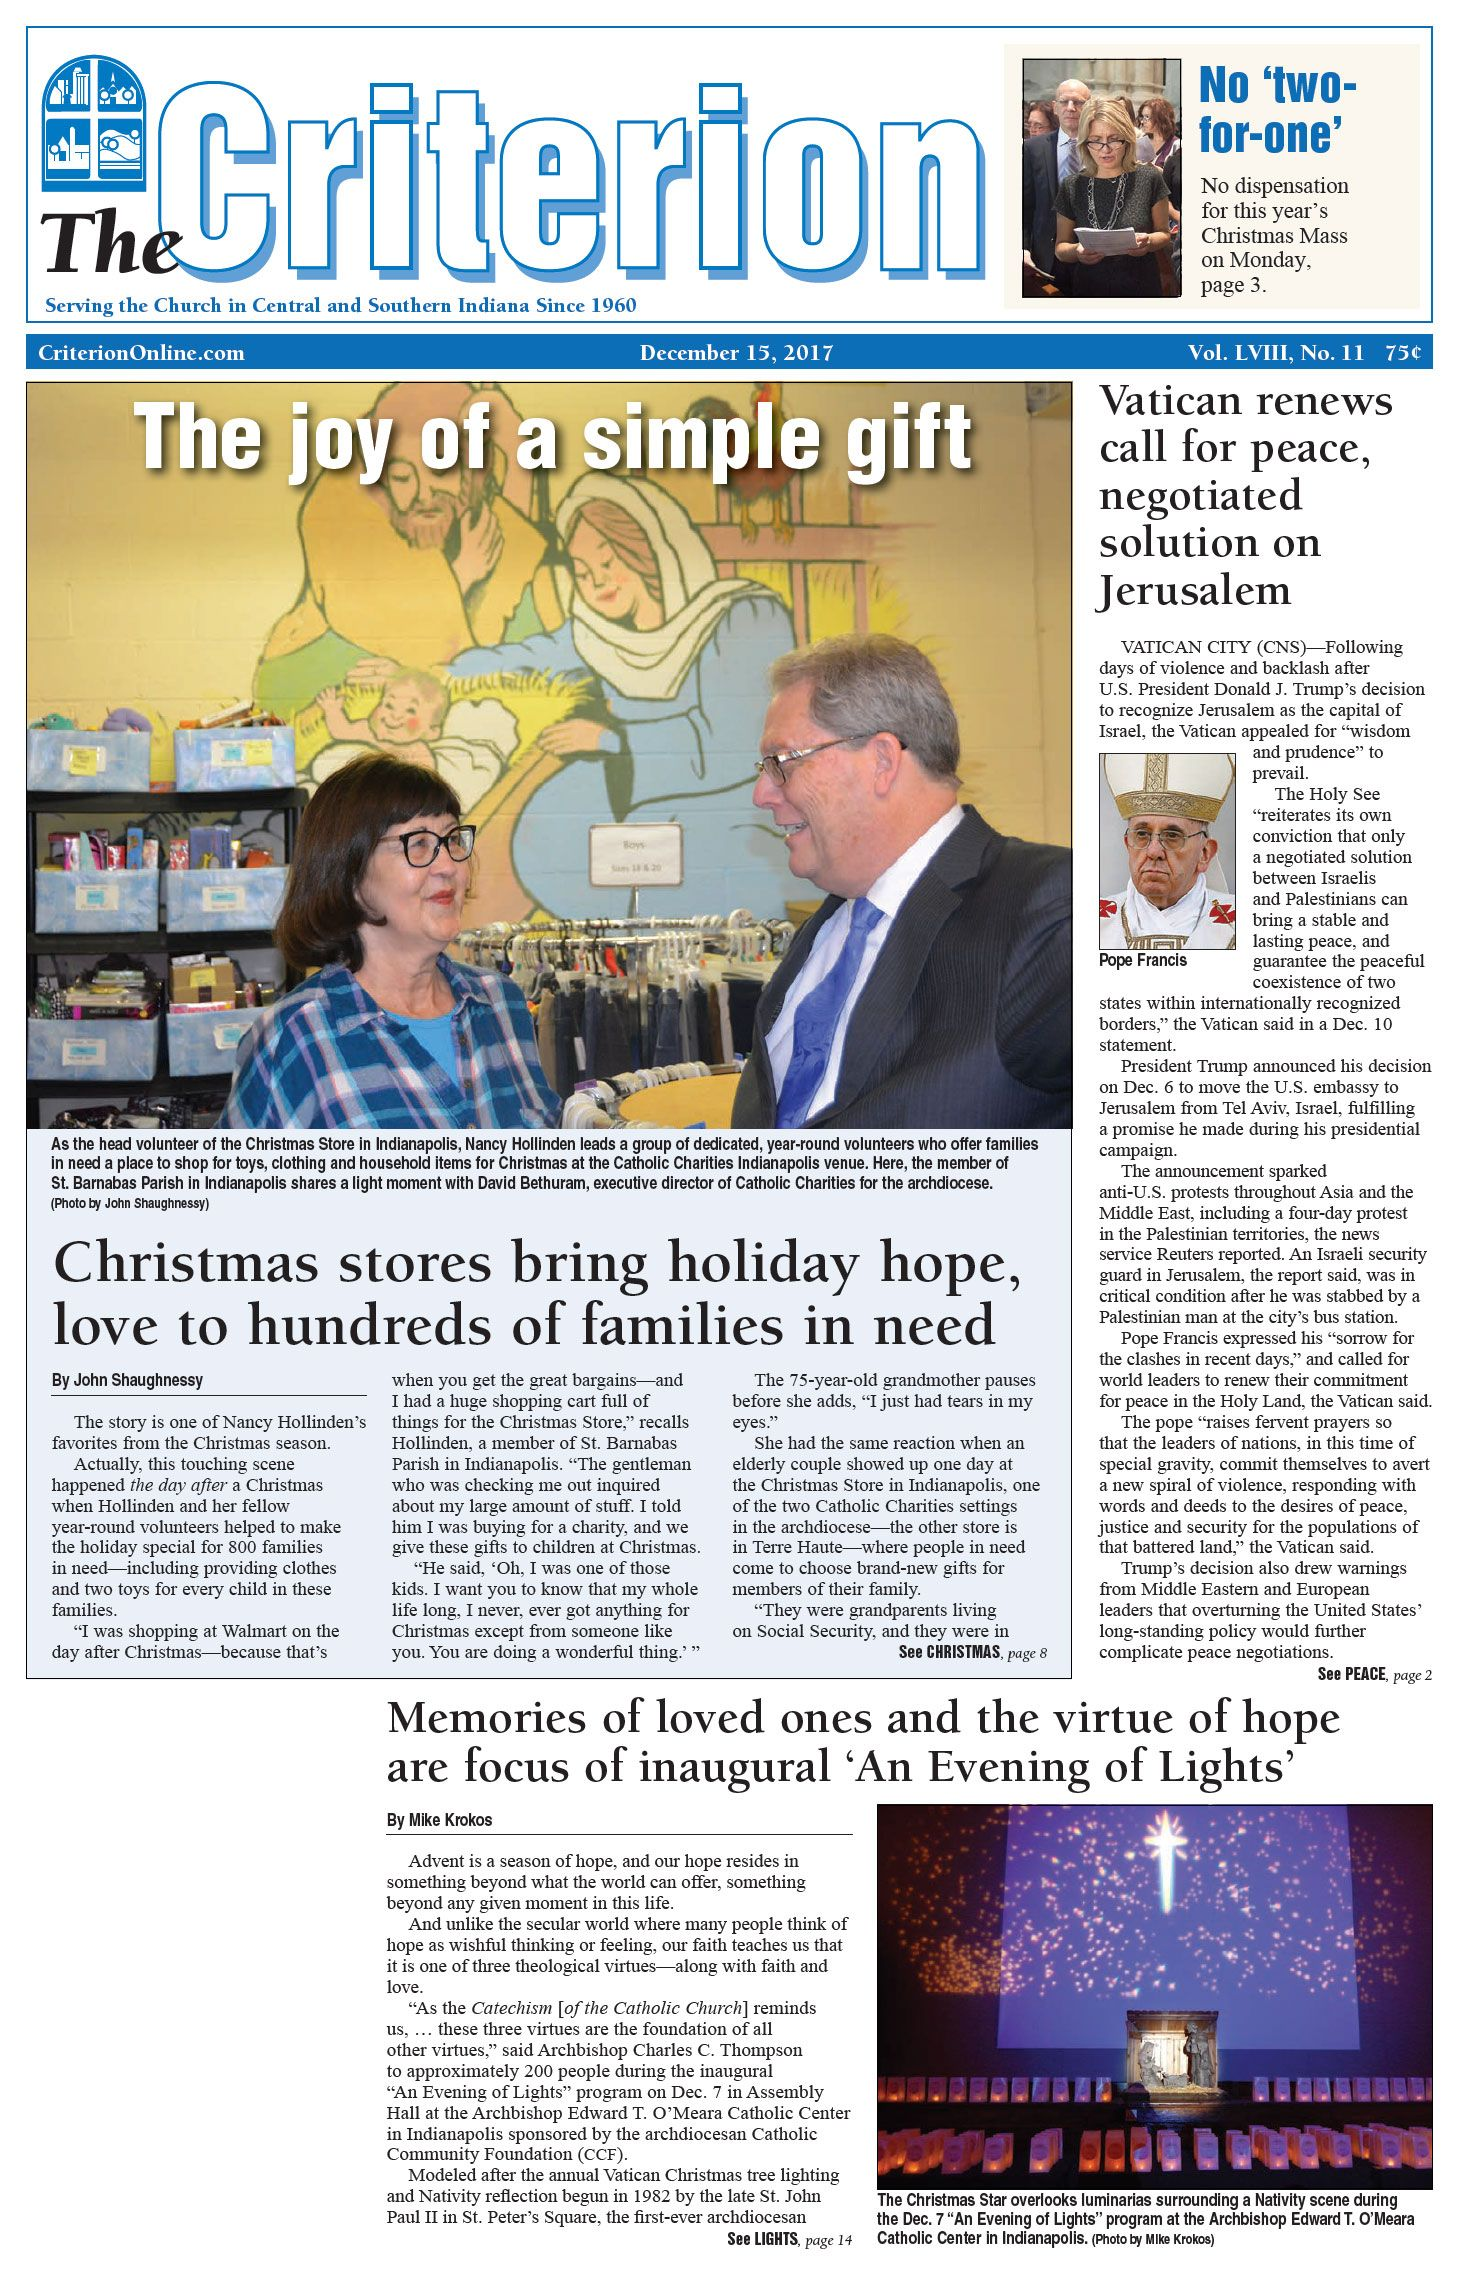 Read The Headlines From The December 15 2017 Issue Of The